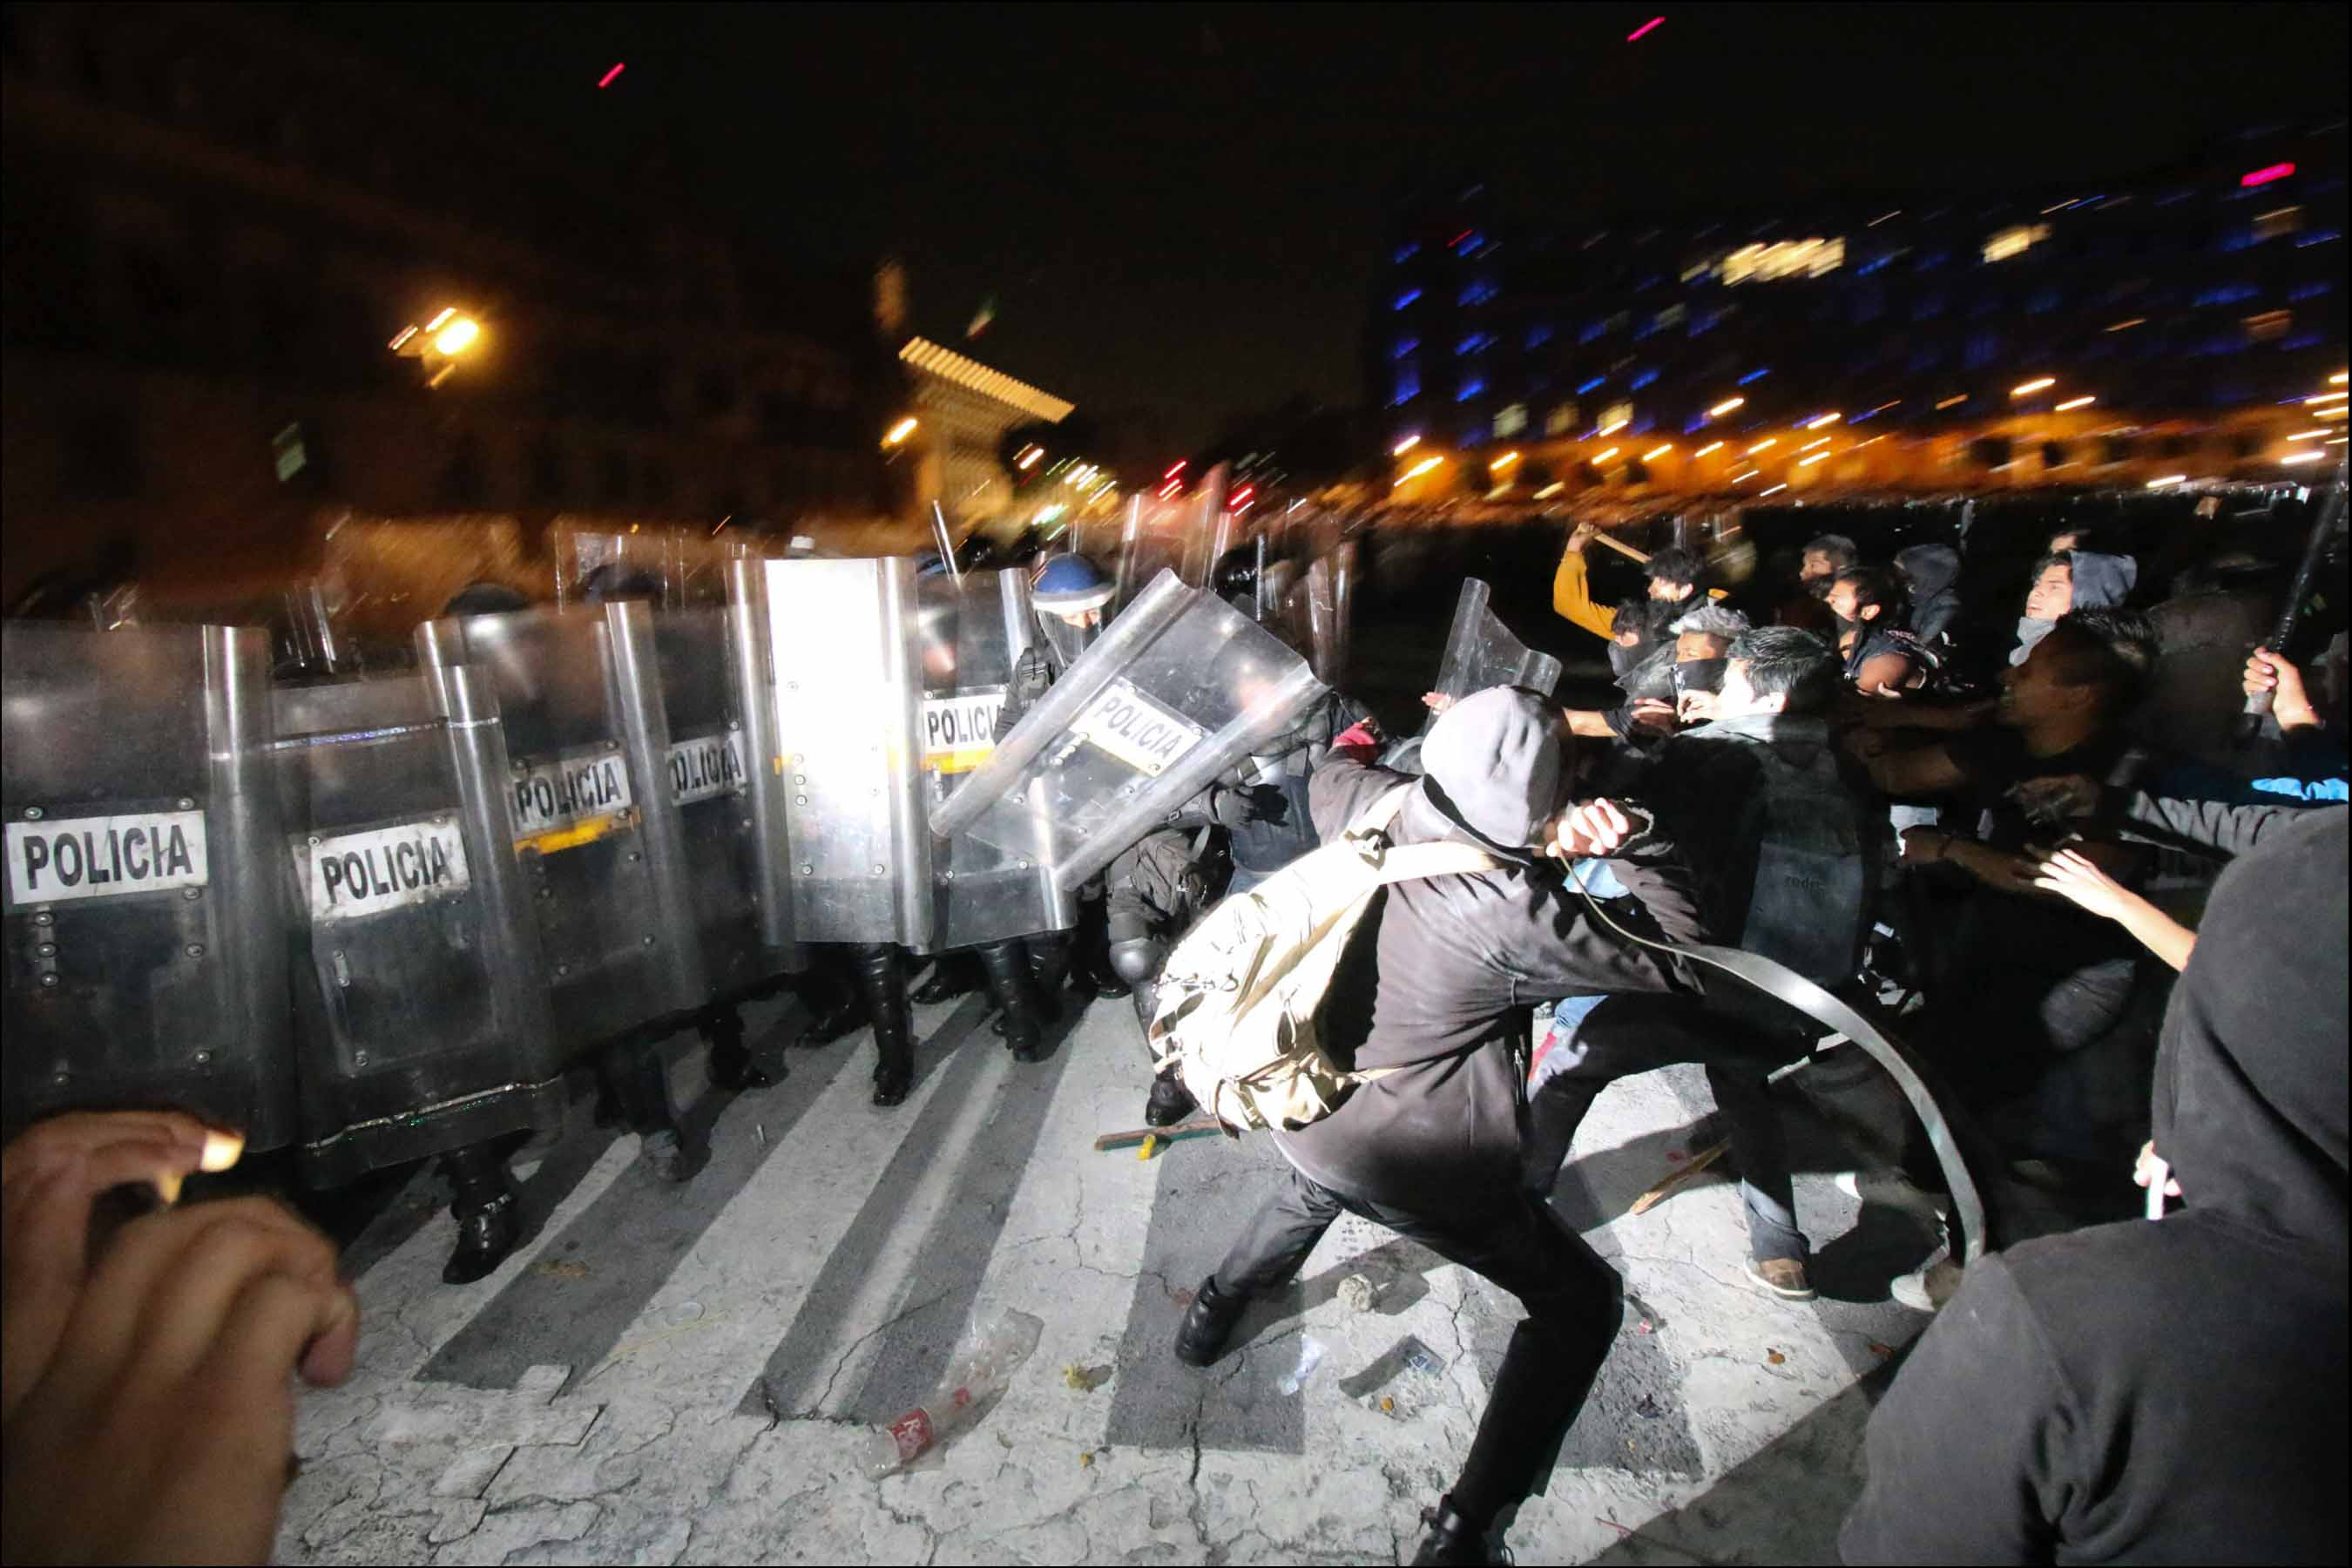 Mexican police and protesters clash at a rally in Mexico City, D.F, Mexico, Thursday, Nov. 20, 2014. The rally followed similar, partly violent demonstrations in the country since the disappearance of 43 students in Guerrero State and was primarily against president Enrique Peña Nieto, asking him to step down.